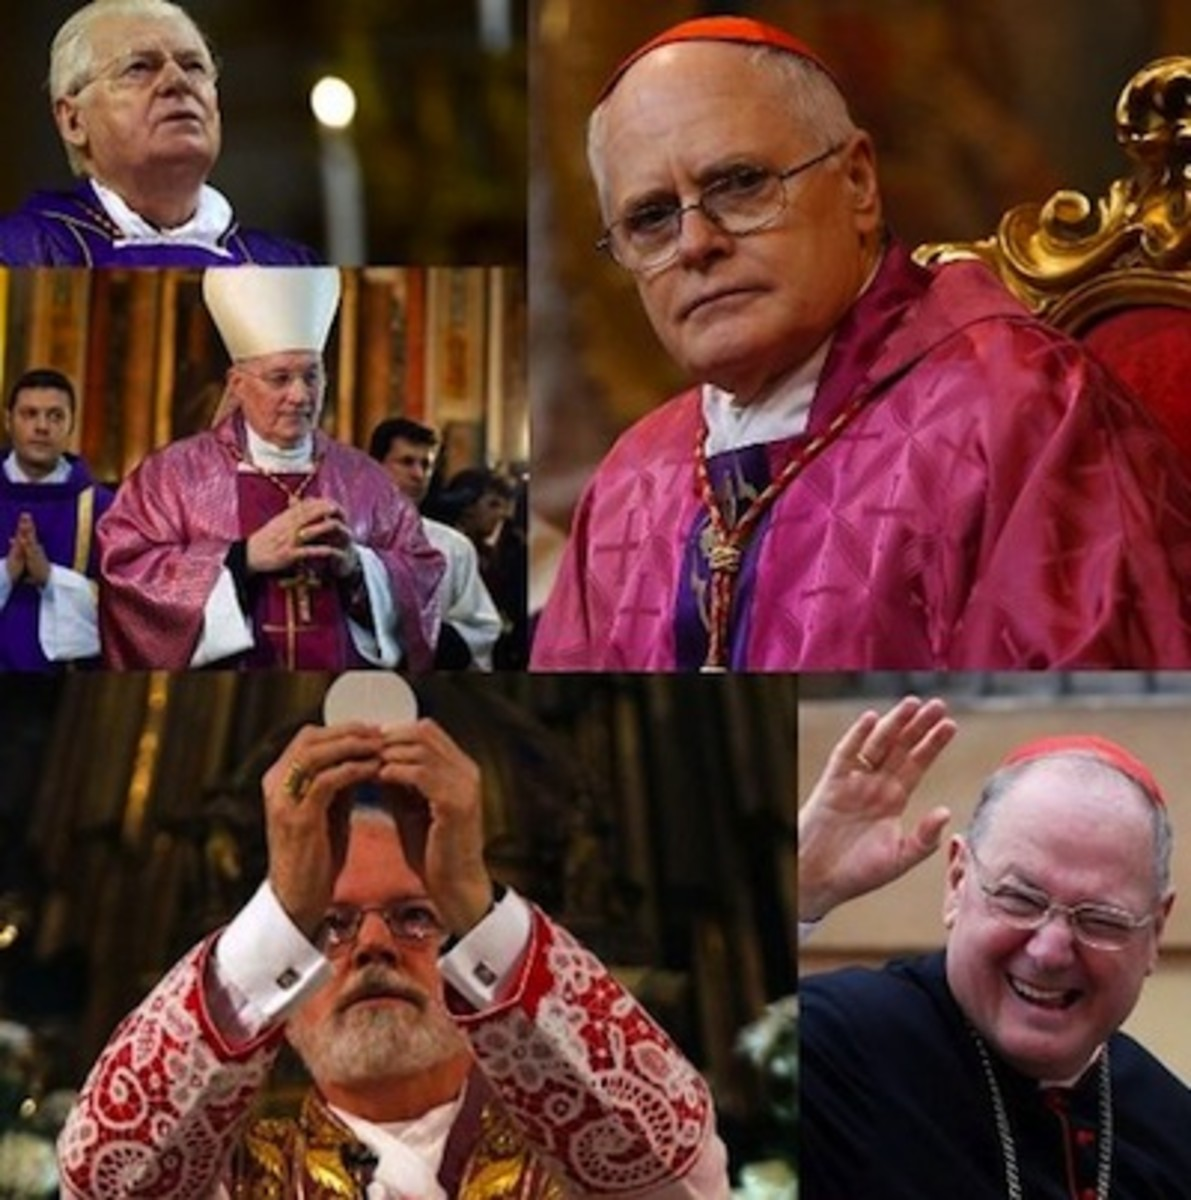 new pope contenders